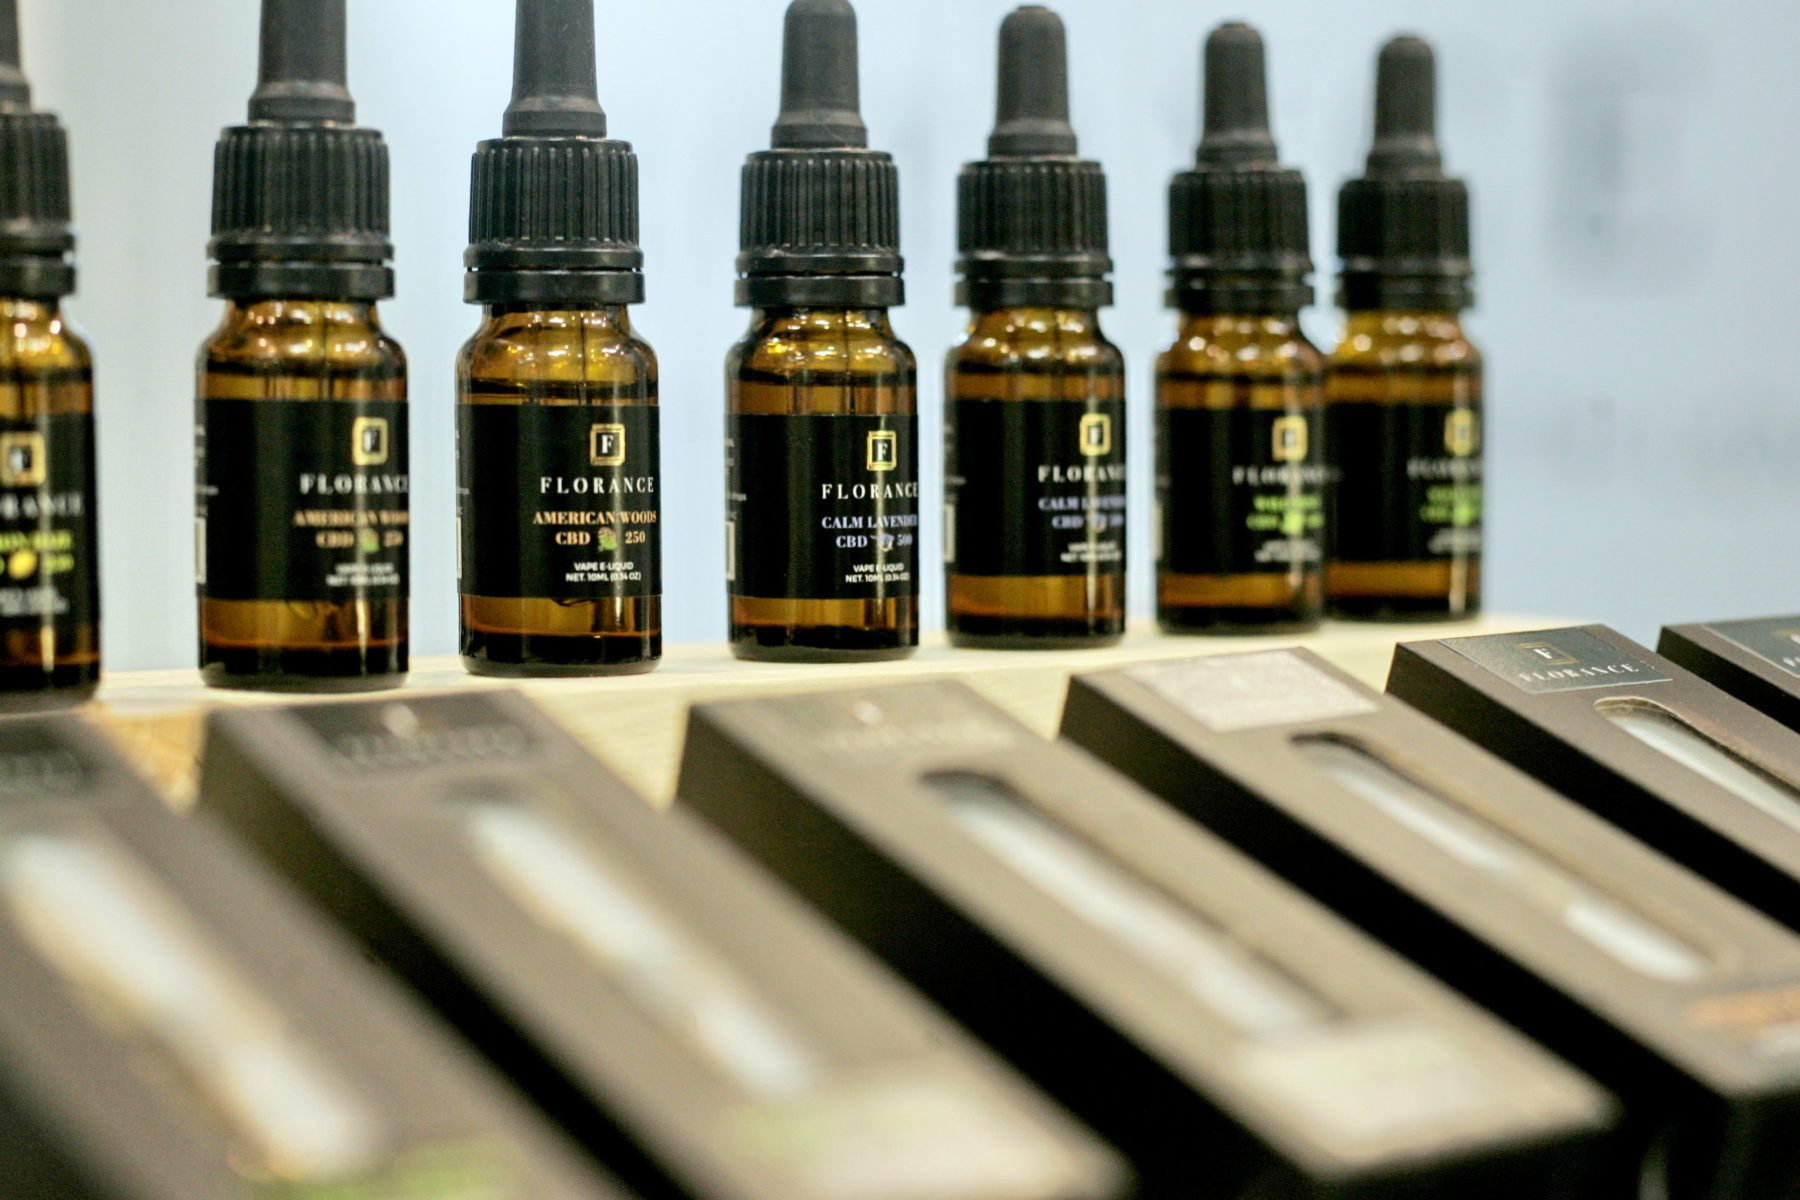 Which Hemp CBD Oil to Use: Full Spectrum, Broad Spectrum, PCR Oil, or Isolate?